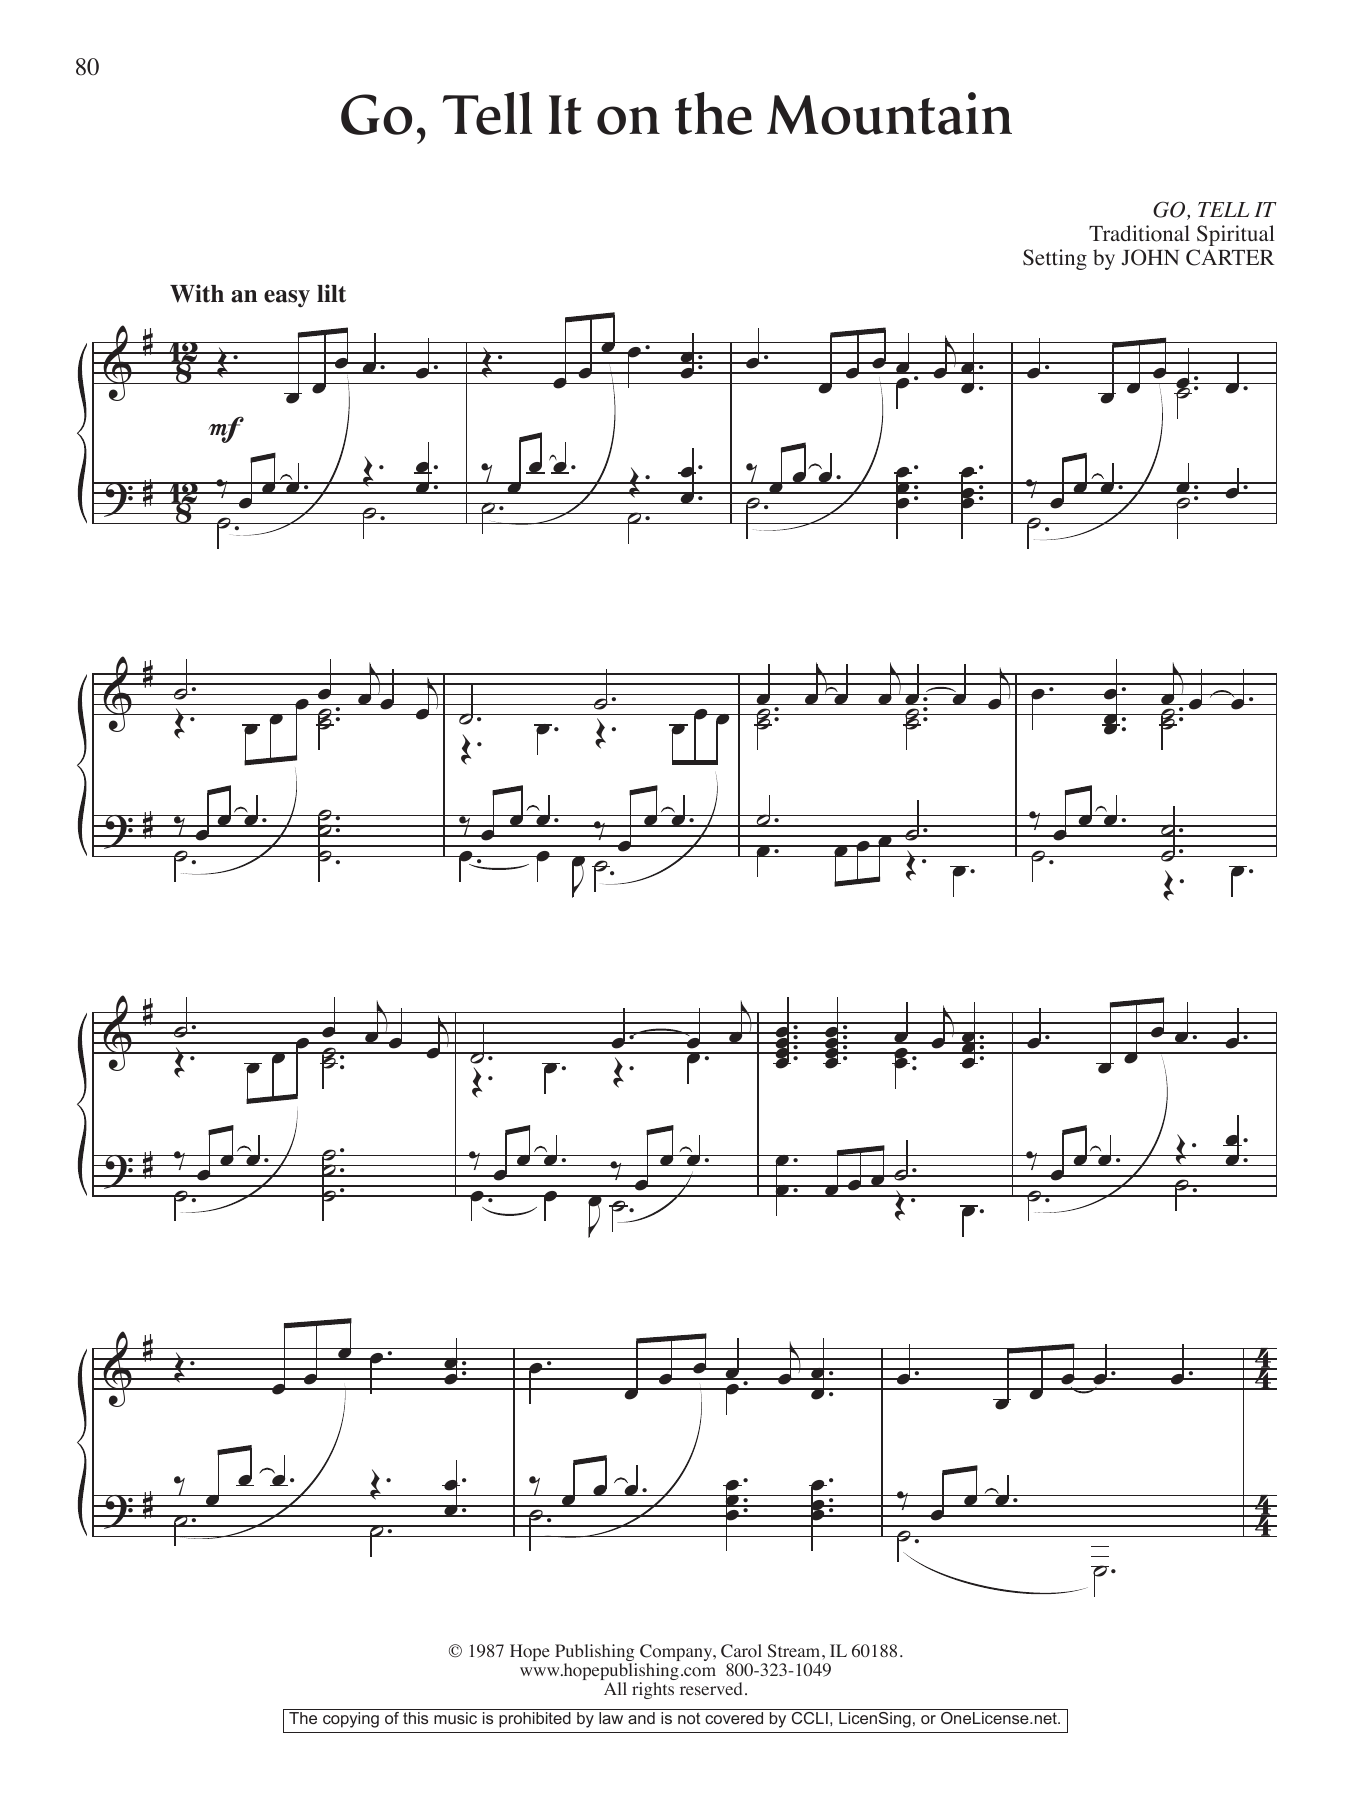 Go, Tell It on the Mountain Sheet Music